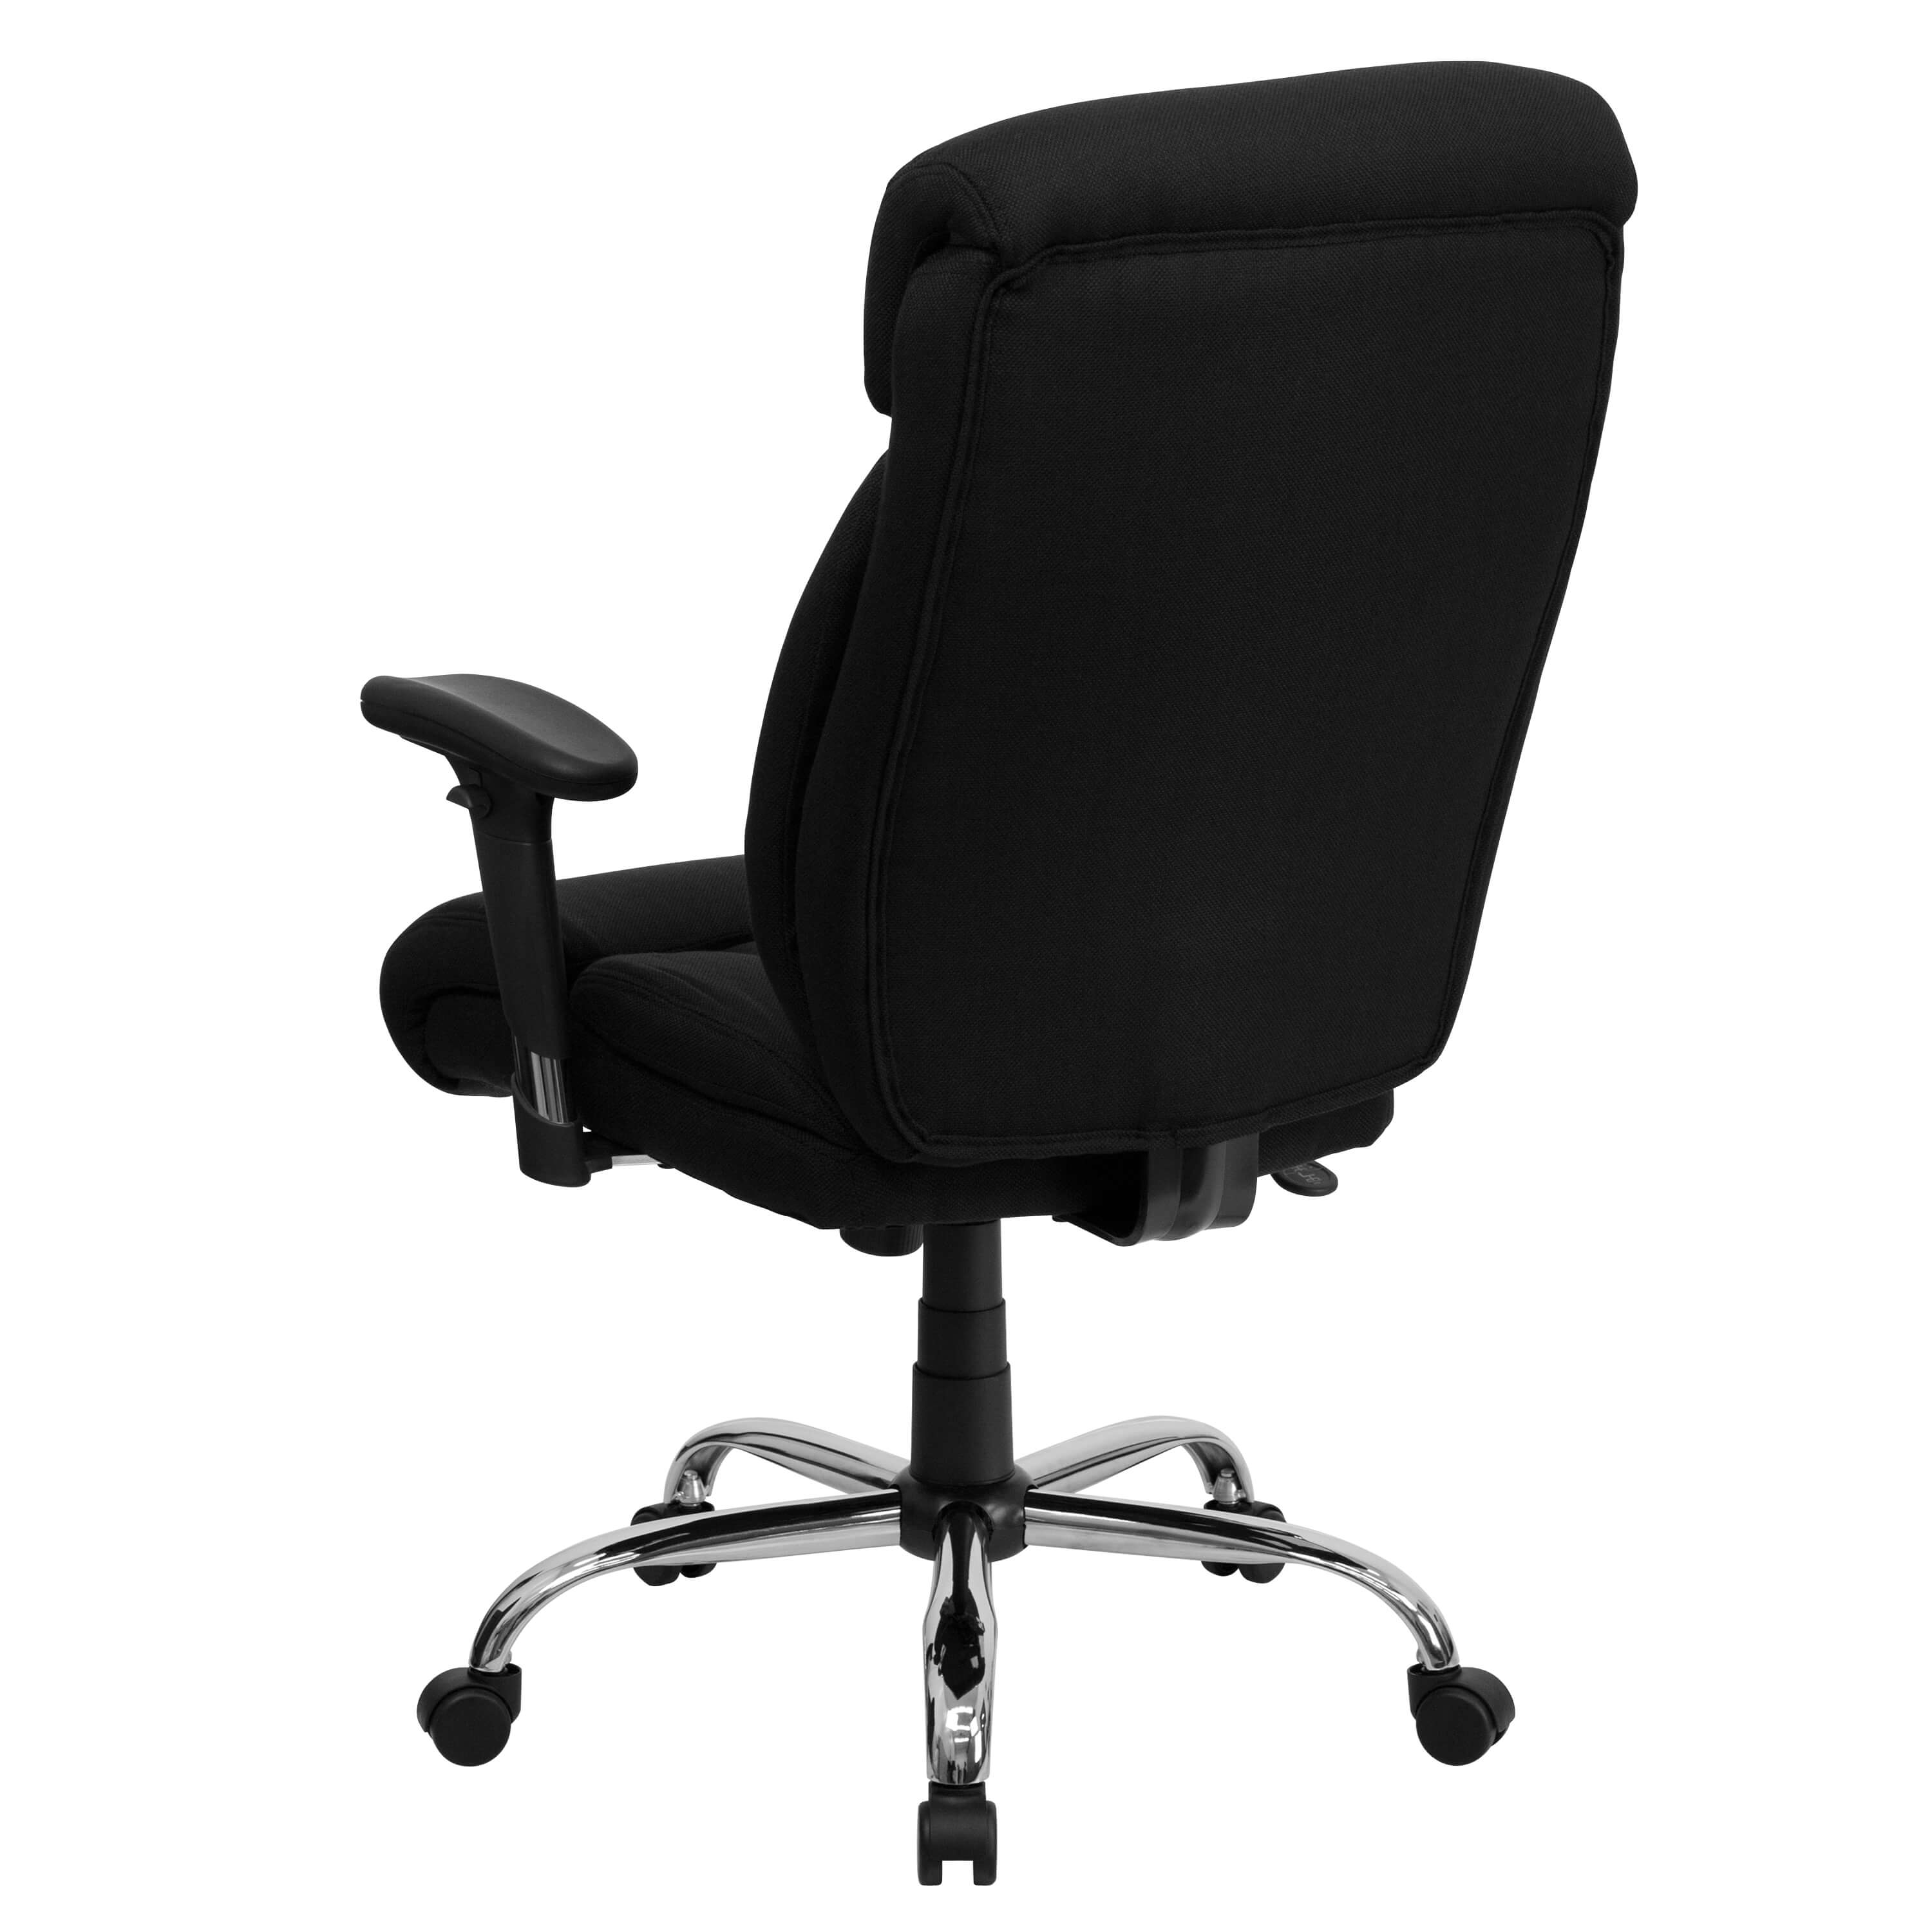 Heavy duty ergonomic office chairs back view